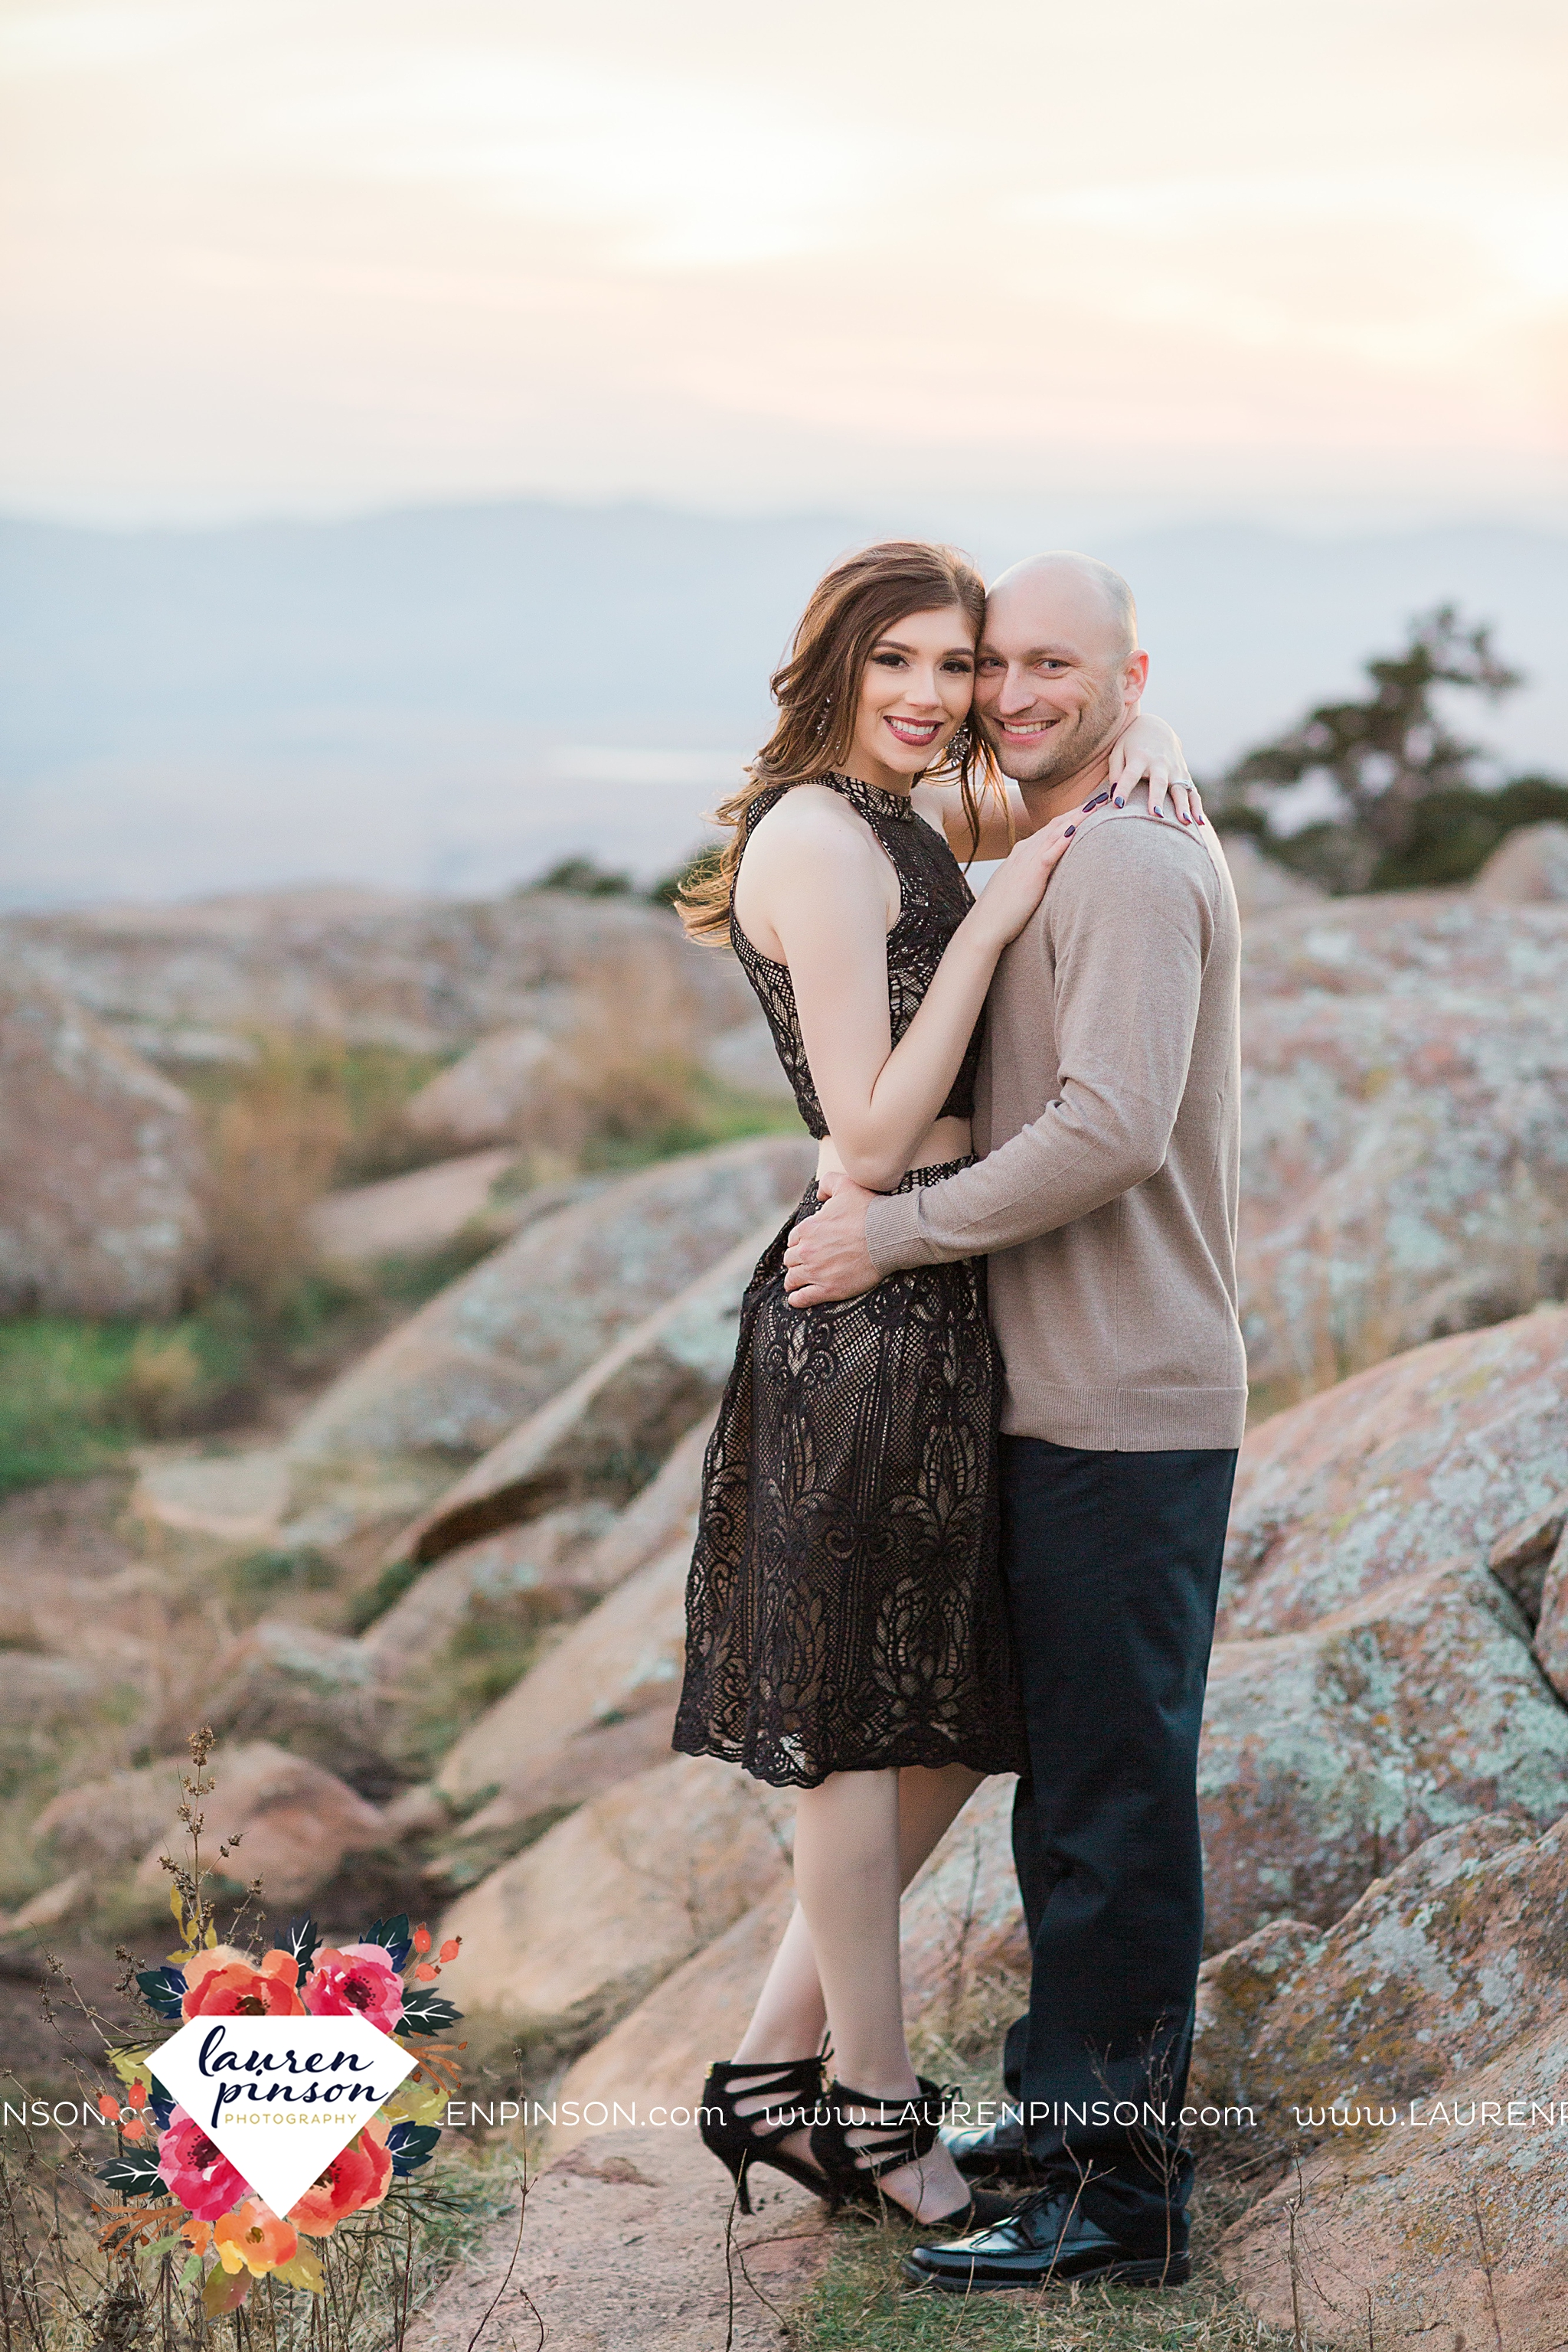 wichita-falls-texas-photographer-burkburnett-engagement-session-wichita-mountains-police-officer_4144.jpg